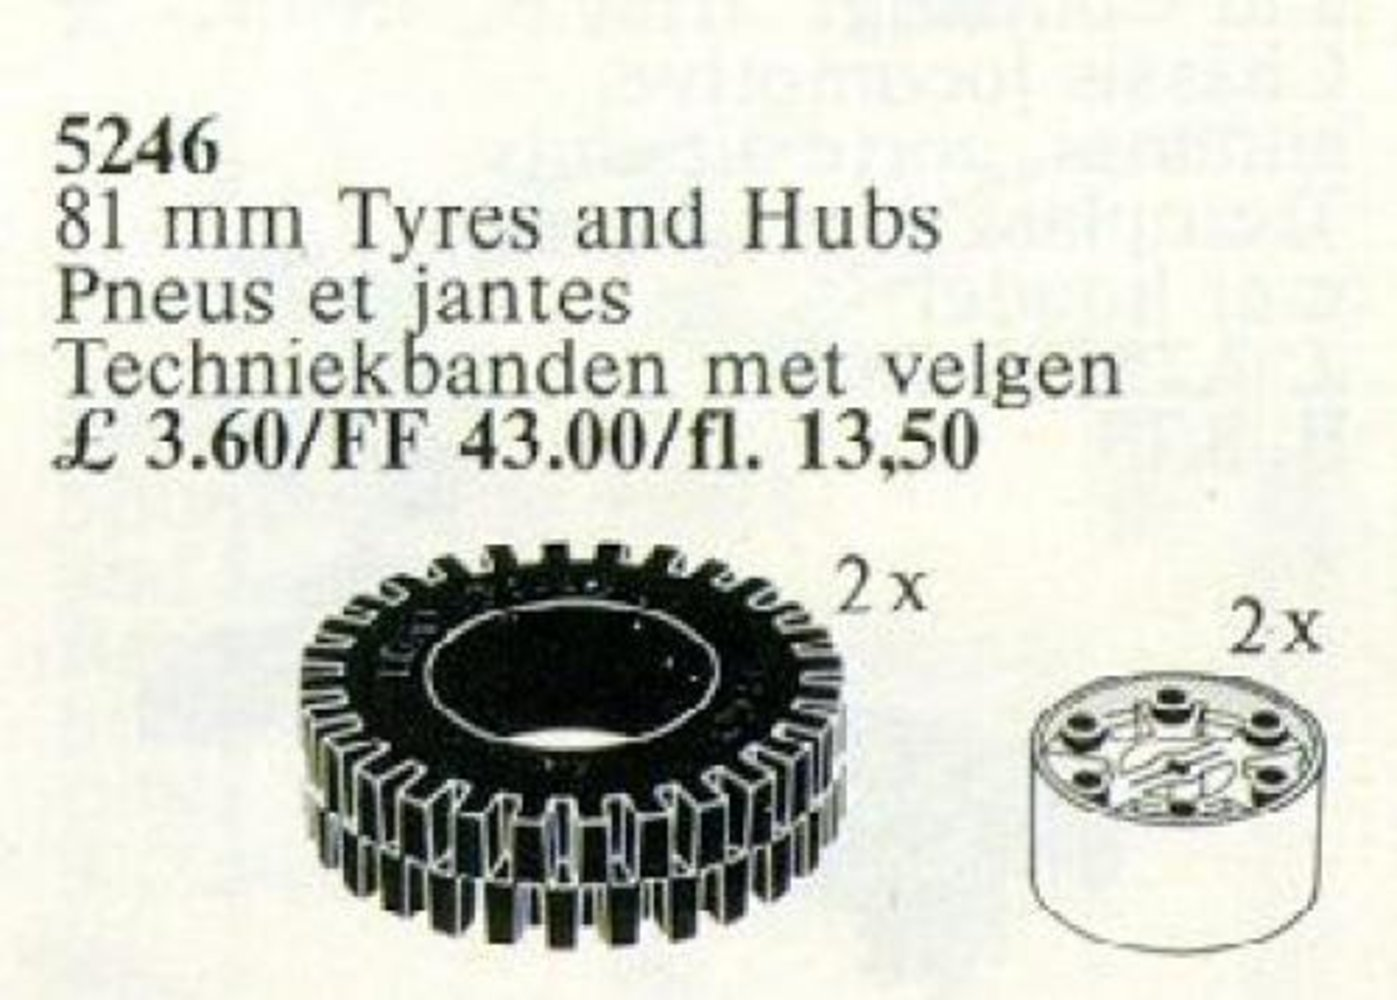 X-Large Tires / 81 mm Tyres and Hubs